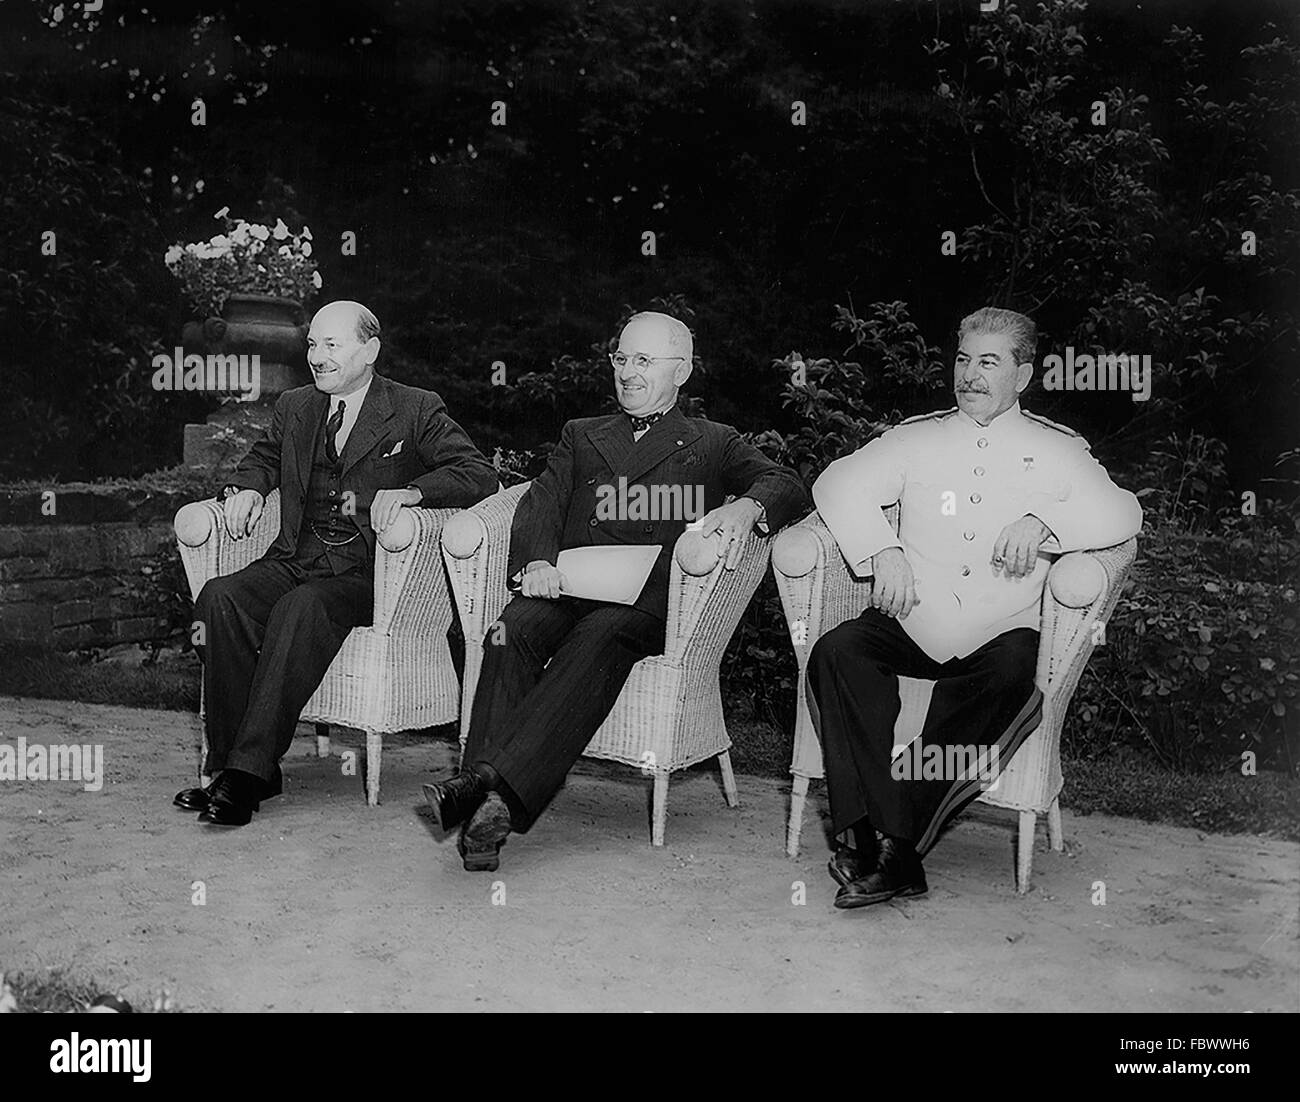 British Prime Minister Clement Attlee, US President Harry S Truman, and Soviet Premier Joseph Stalin at the Potsdam - Stock Image